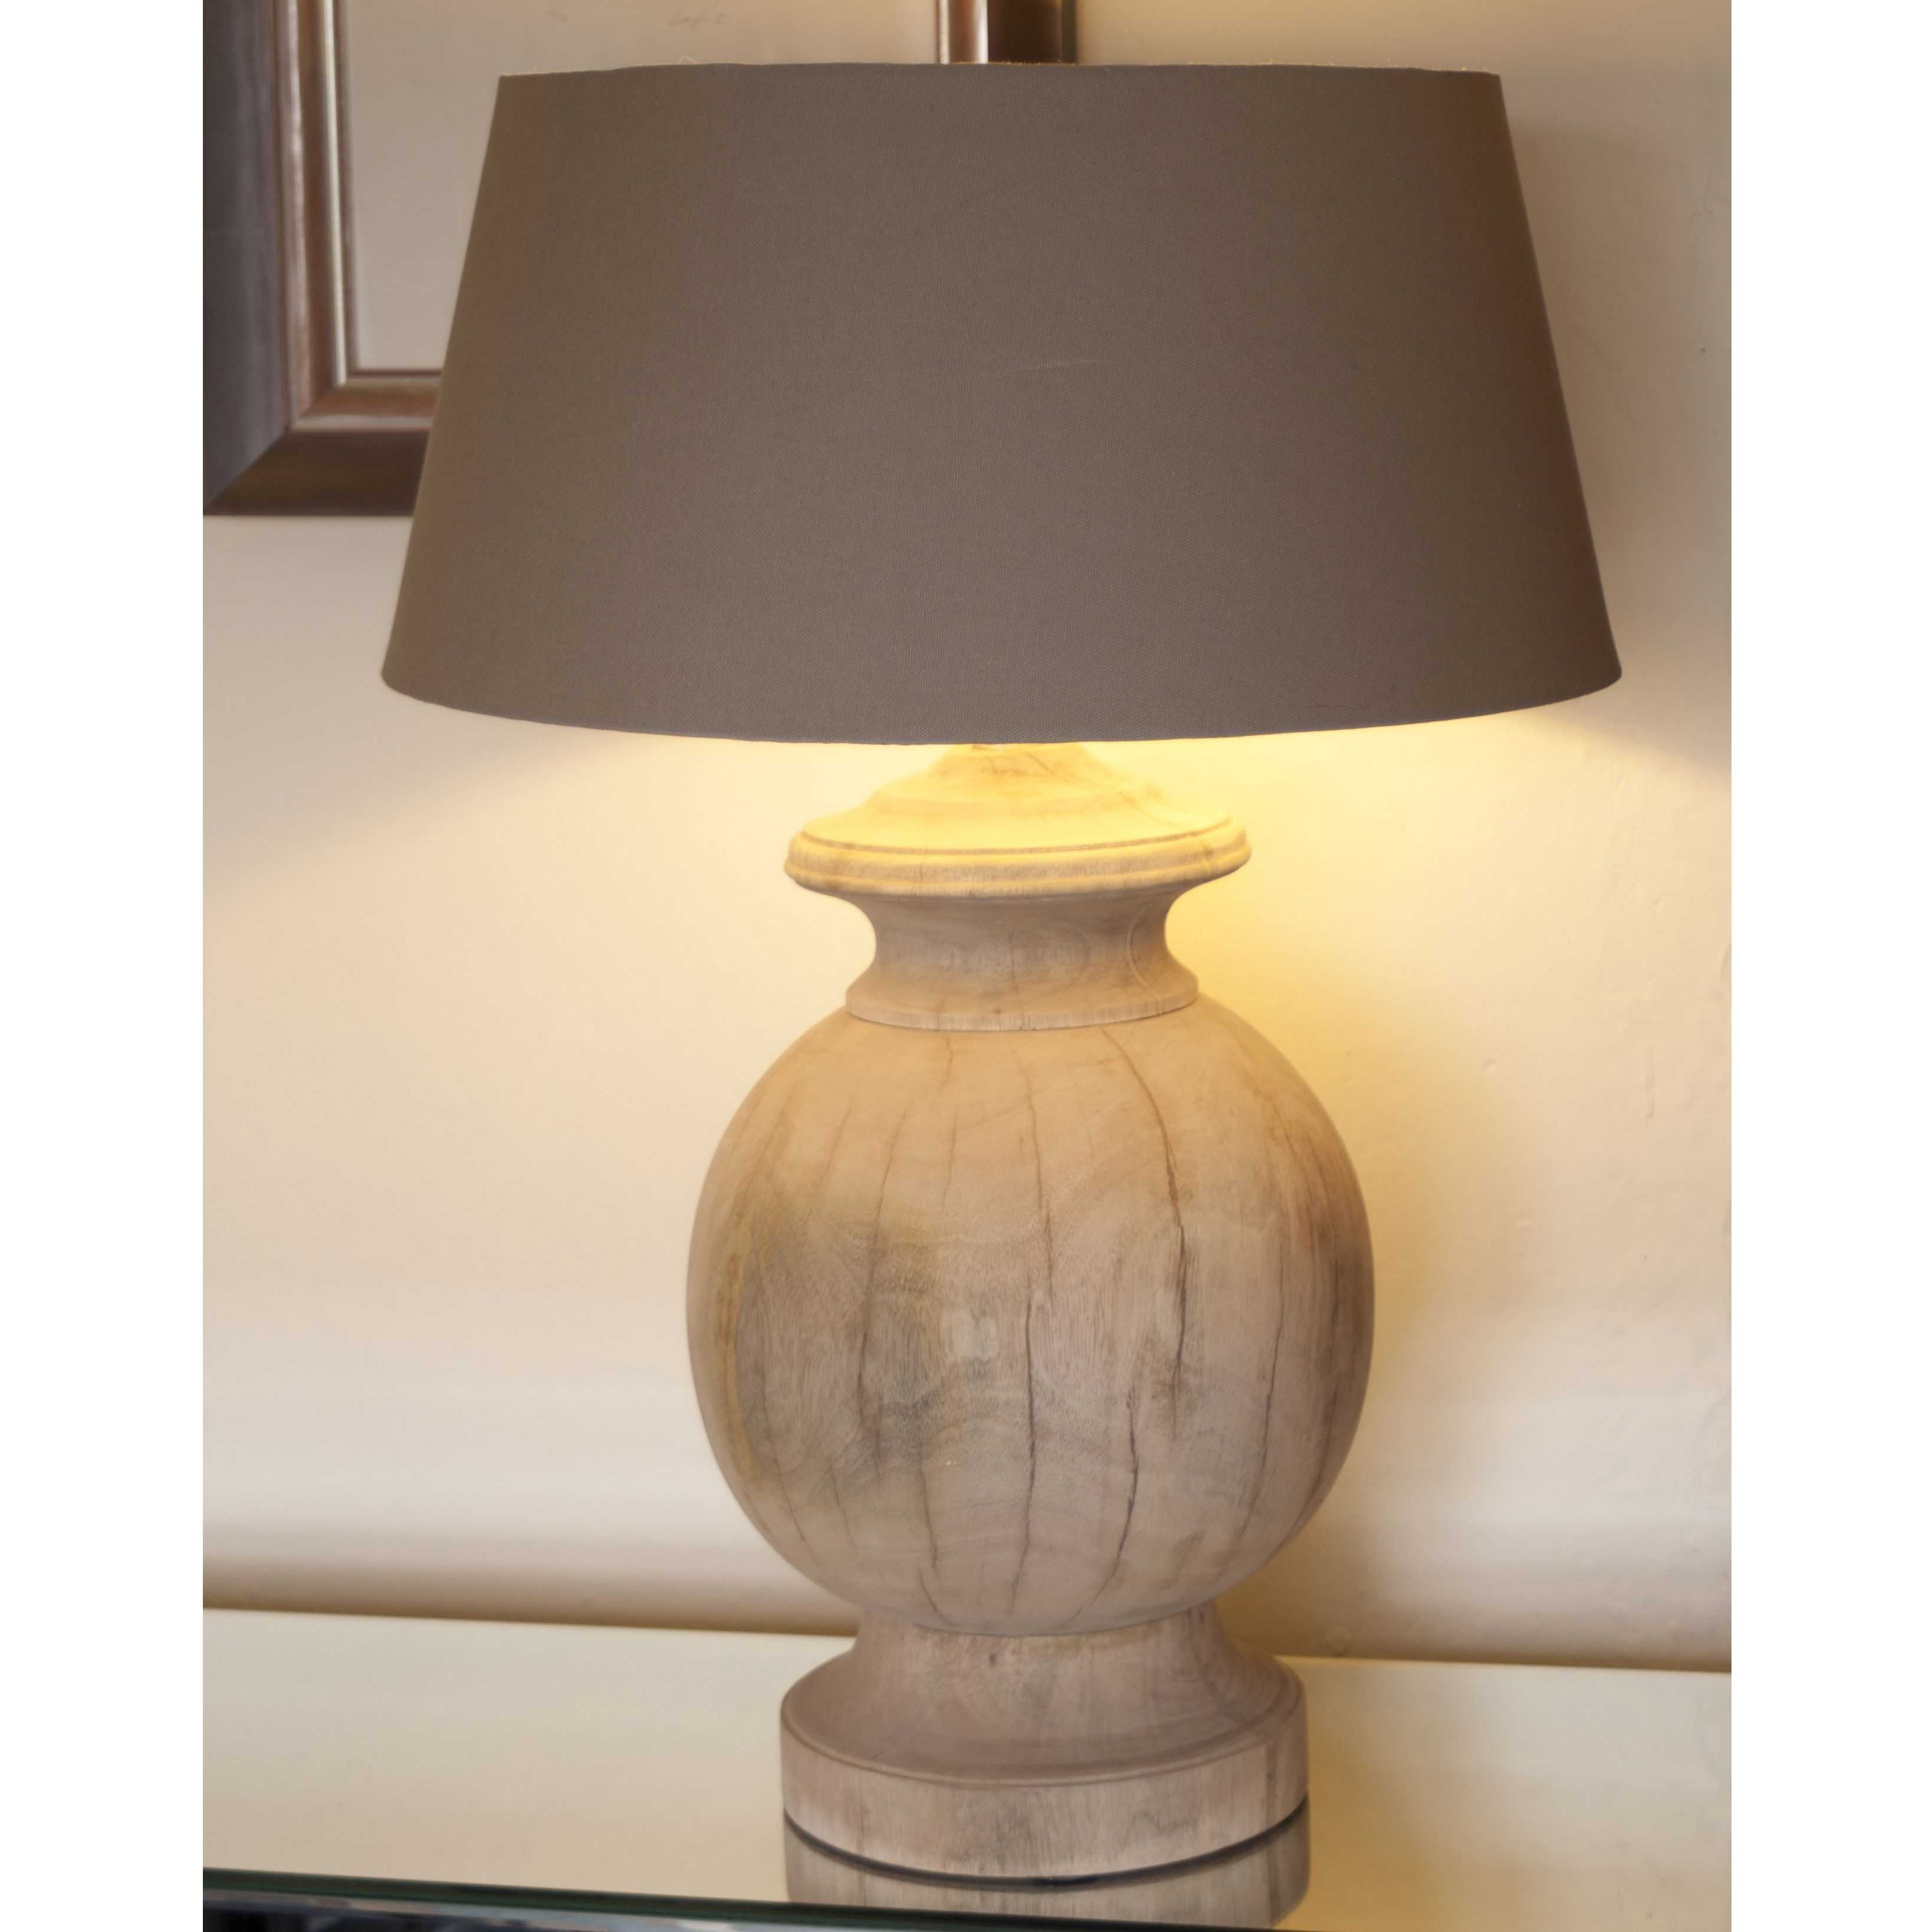 Cheap Table Lamps For Bedroom Images With Stunning Living Room 2018 Inside Table Lamps For The Living Room (View 13 of 15)